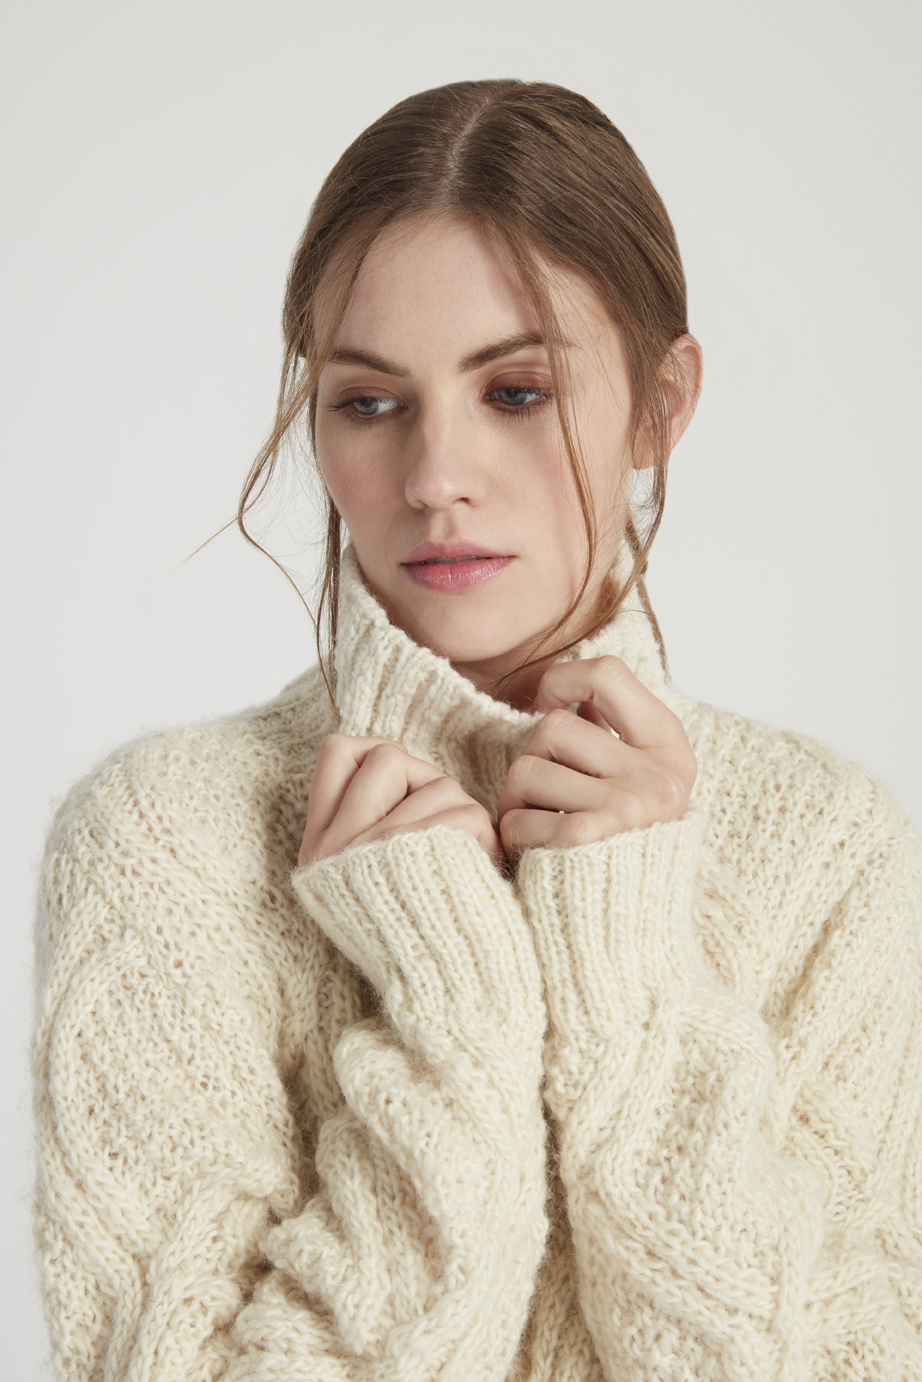 Cable Jumper in Unbleached (http://www.peopletree.co.uk/women/knitwear/cable-jumper-in-unbleached)